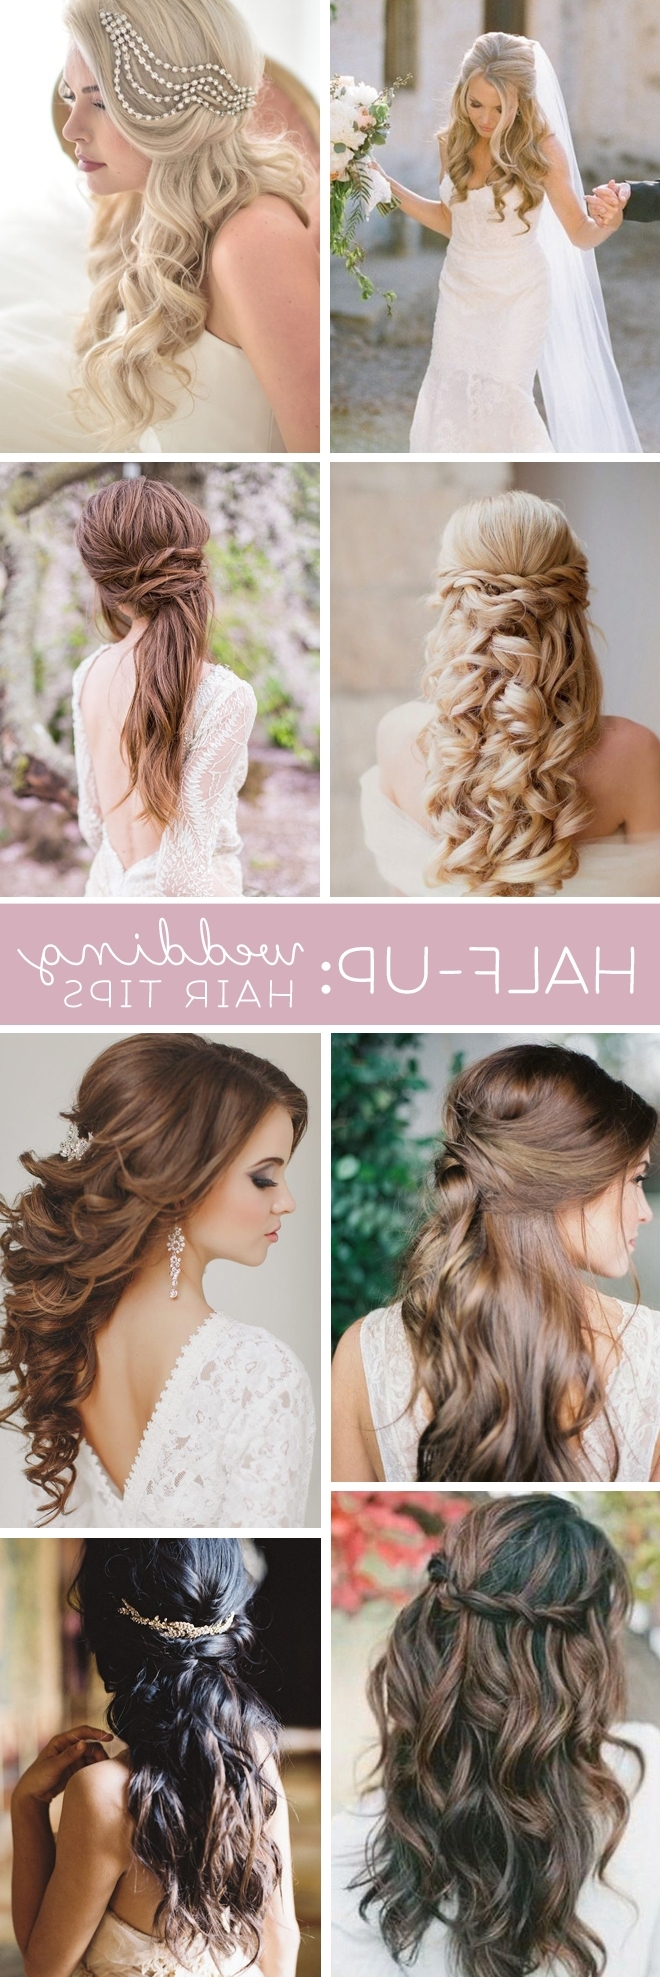 Wedding Hair Tips // Half Up + Half Down Styles Throughout Current Part Up Part Down Wedding Hairstyles (View 14 of 15)